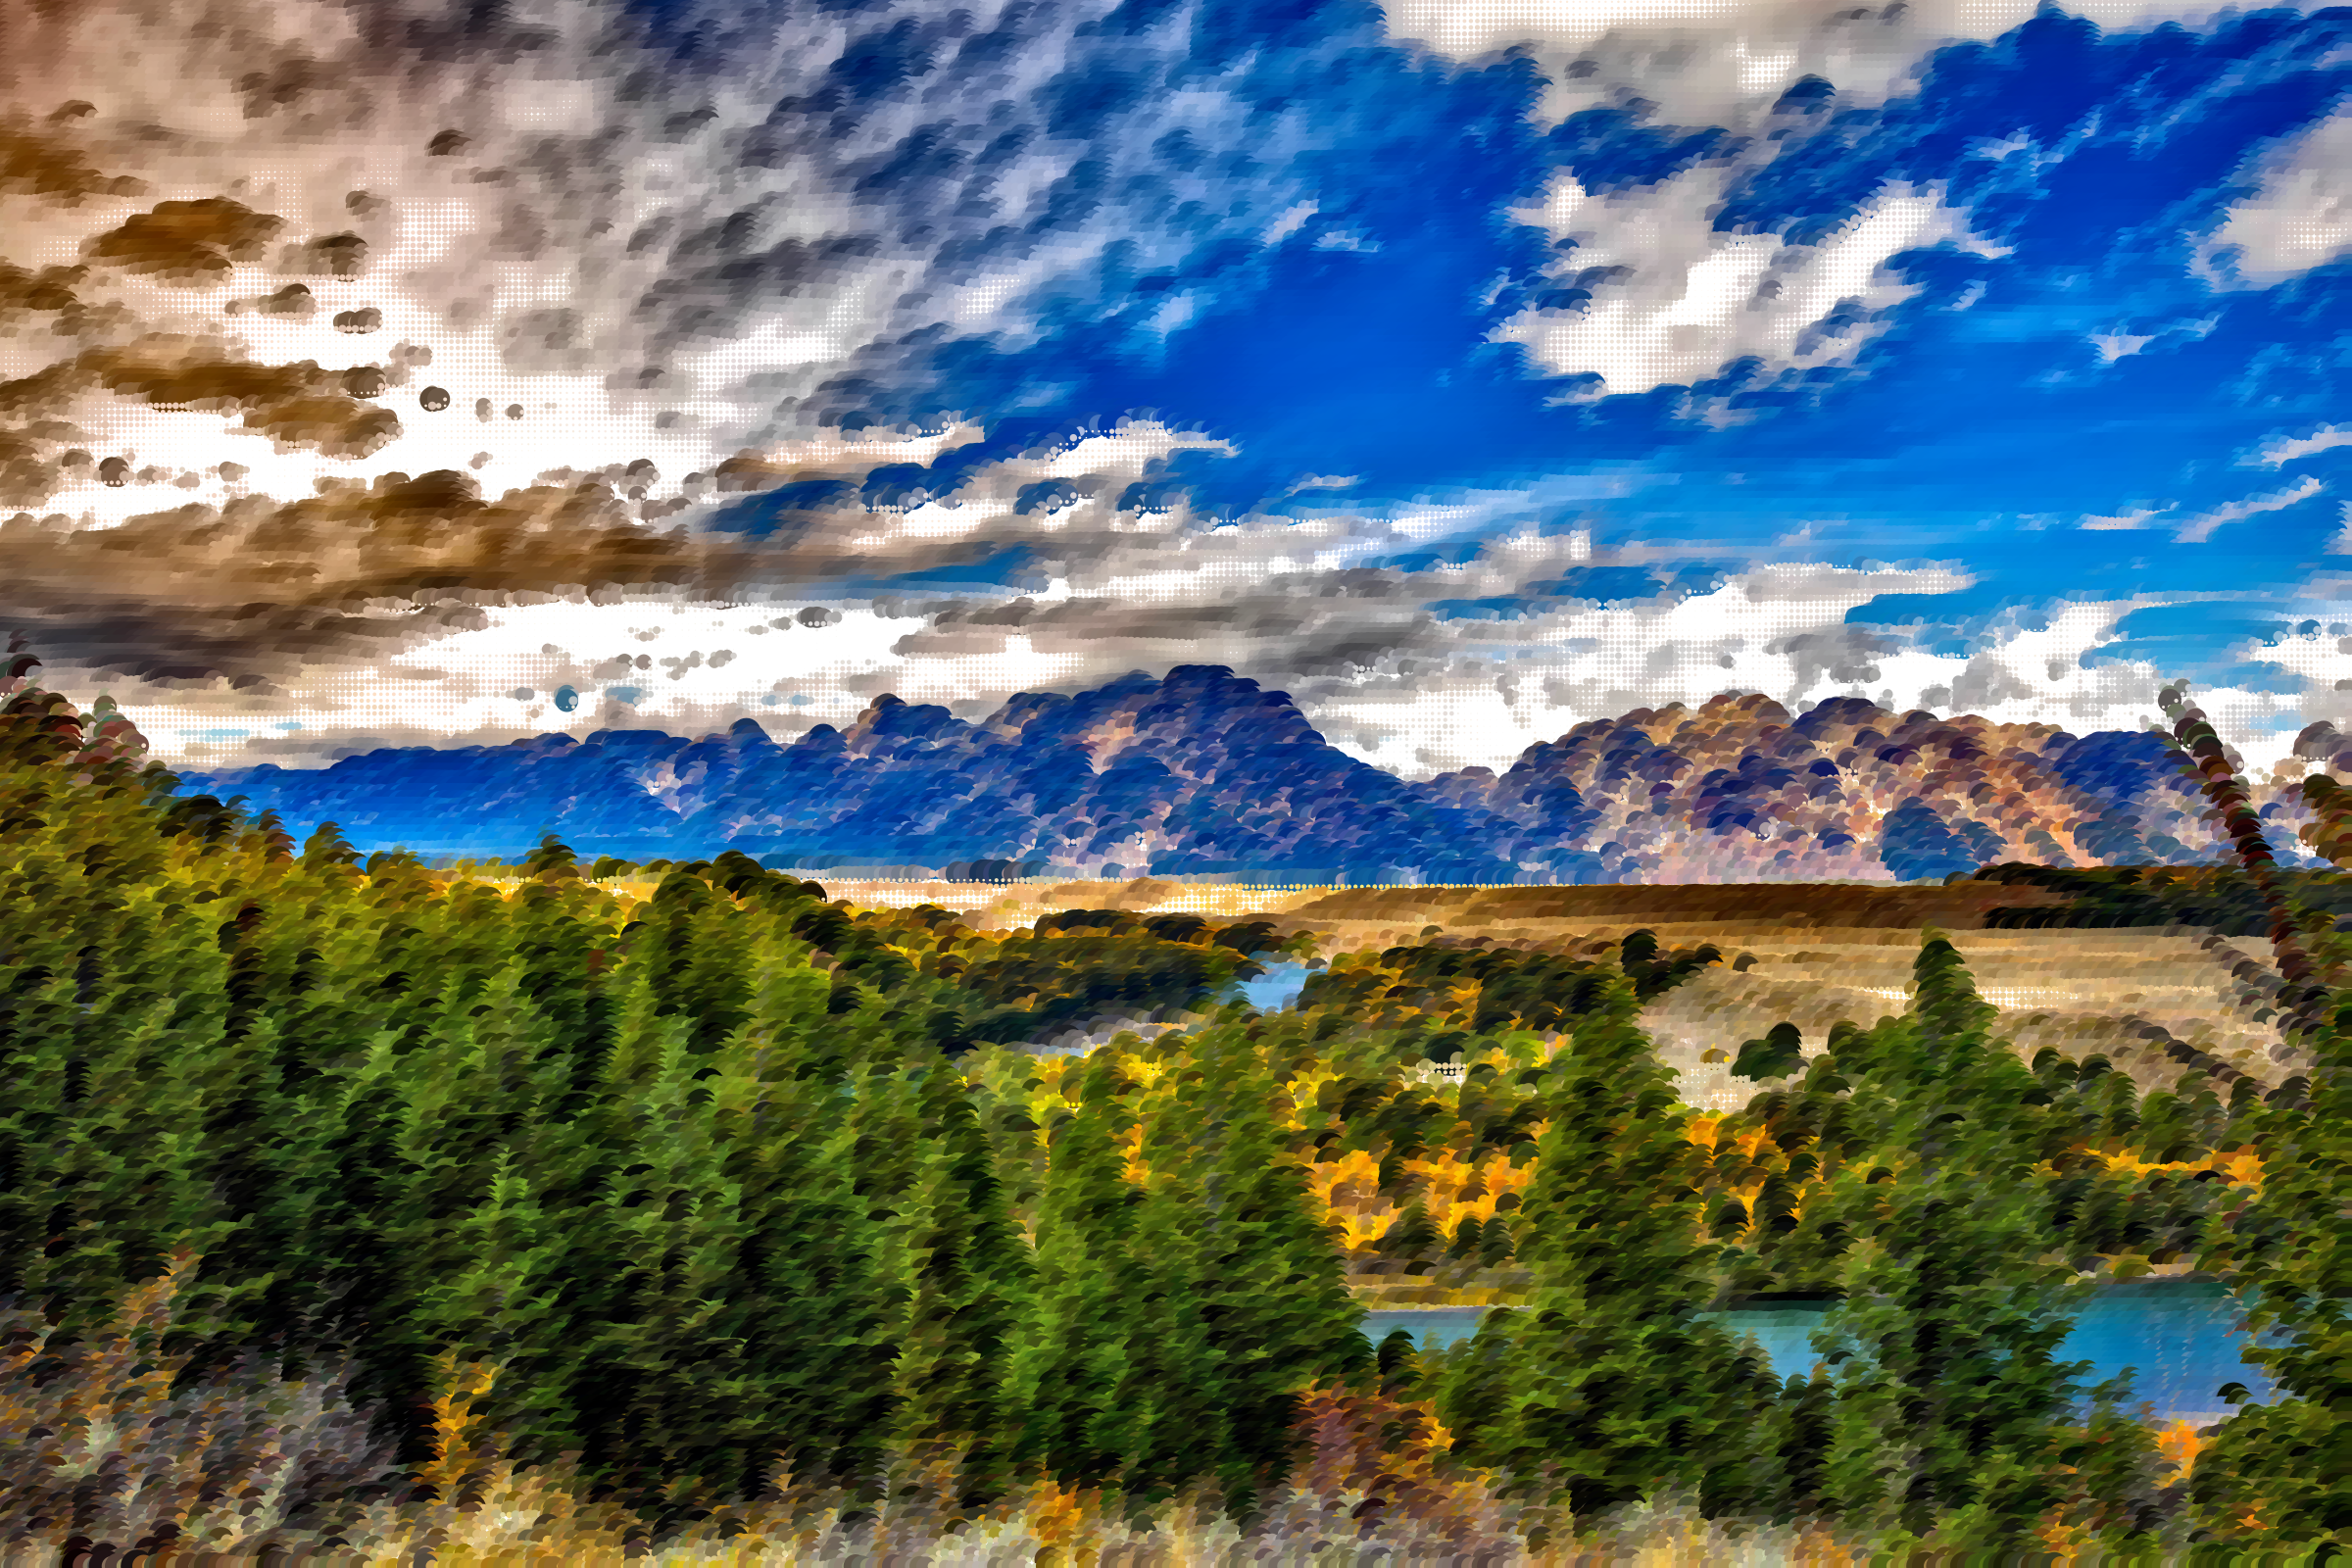 Surreal grand tetons big. Clouds clipart mountain